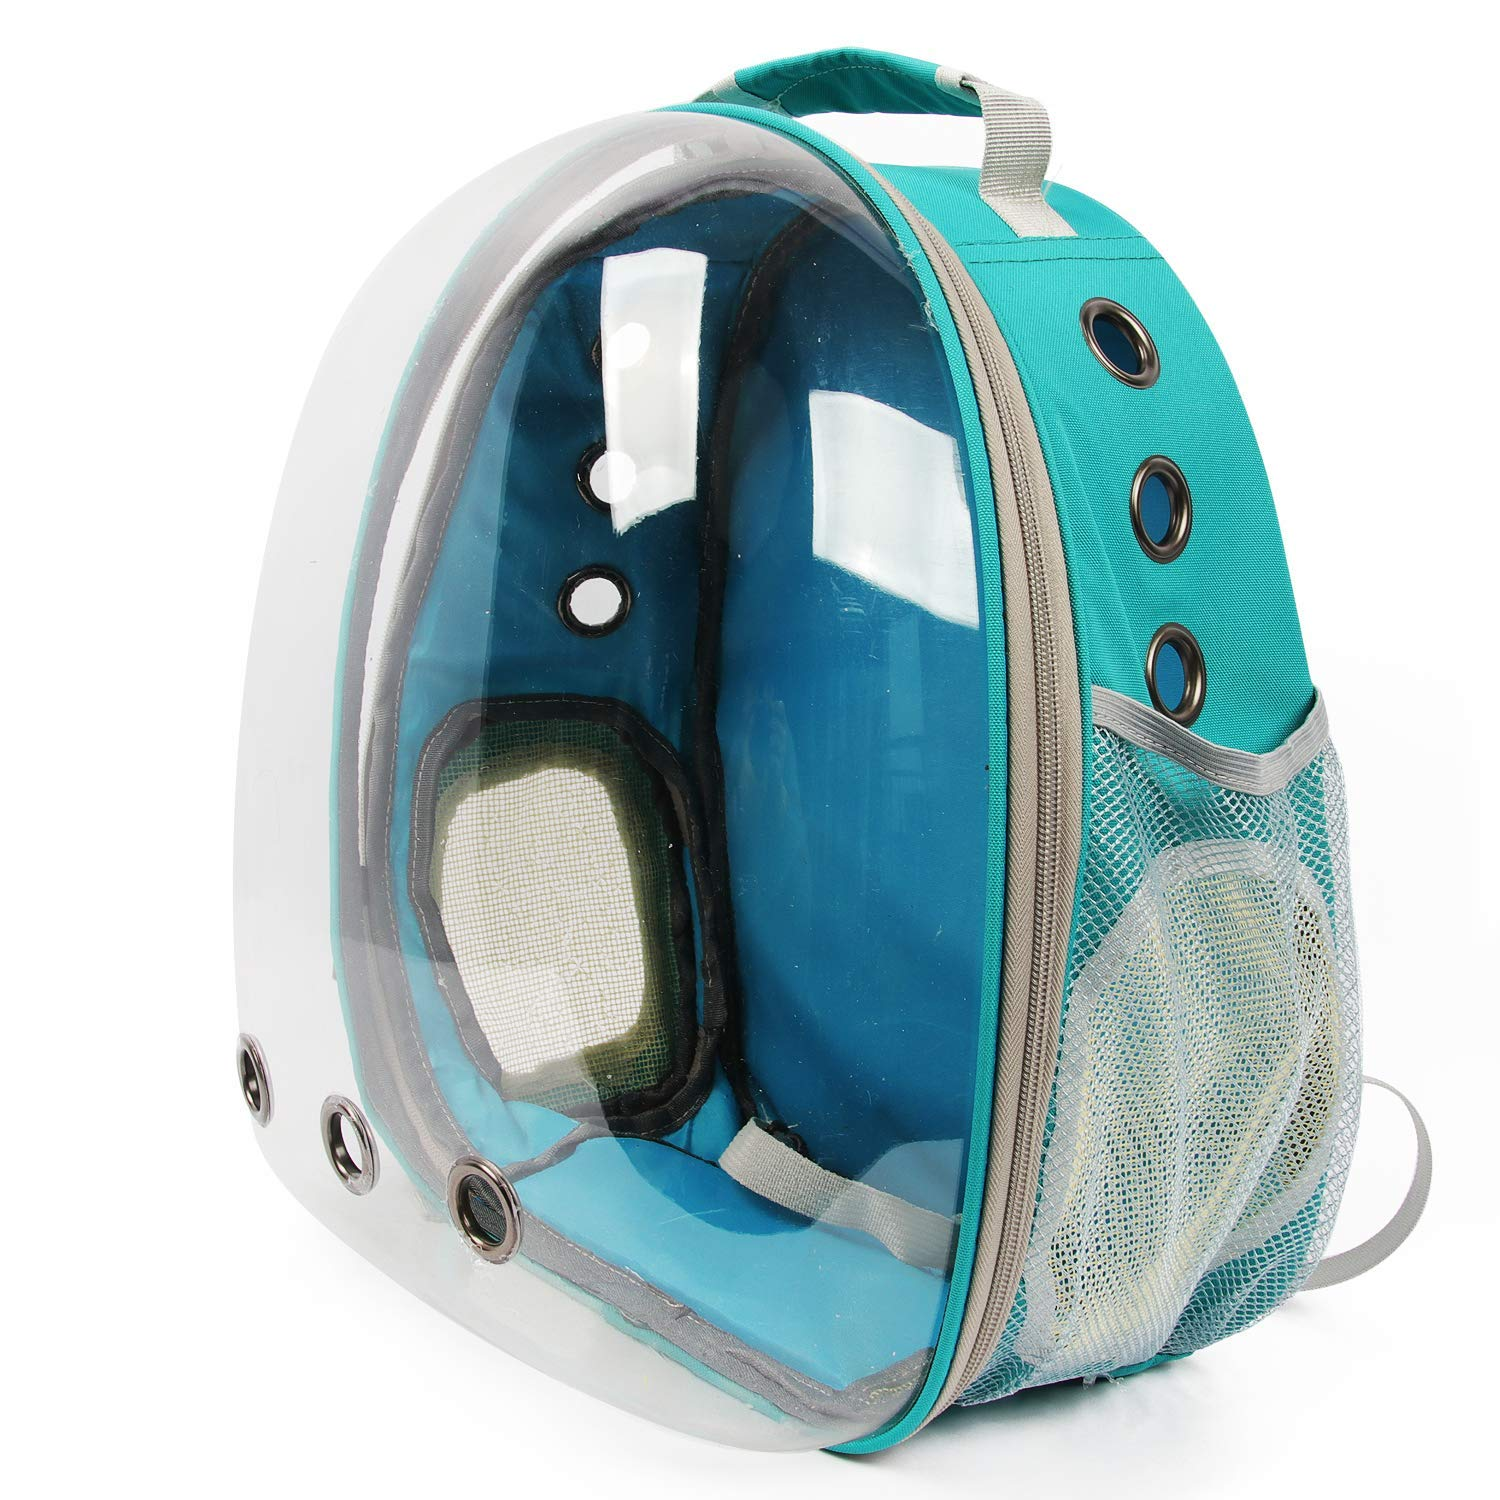 bluee Transparent and Breathable Carrier Backpack Like Space Capsule for pet Like cat and Dogs